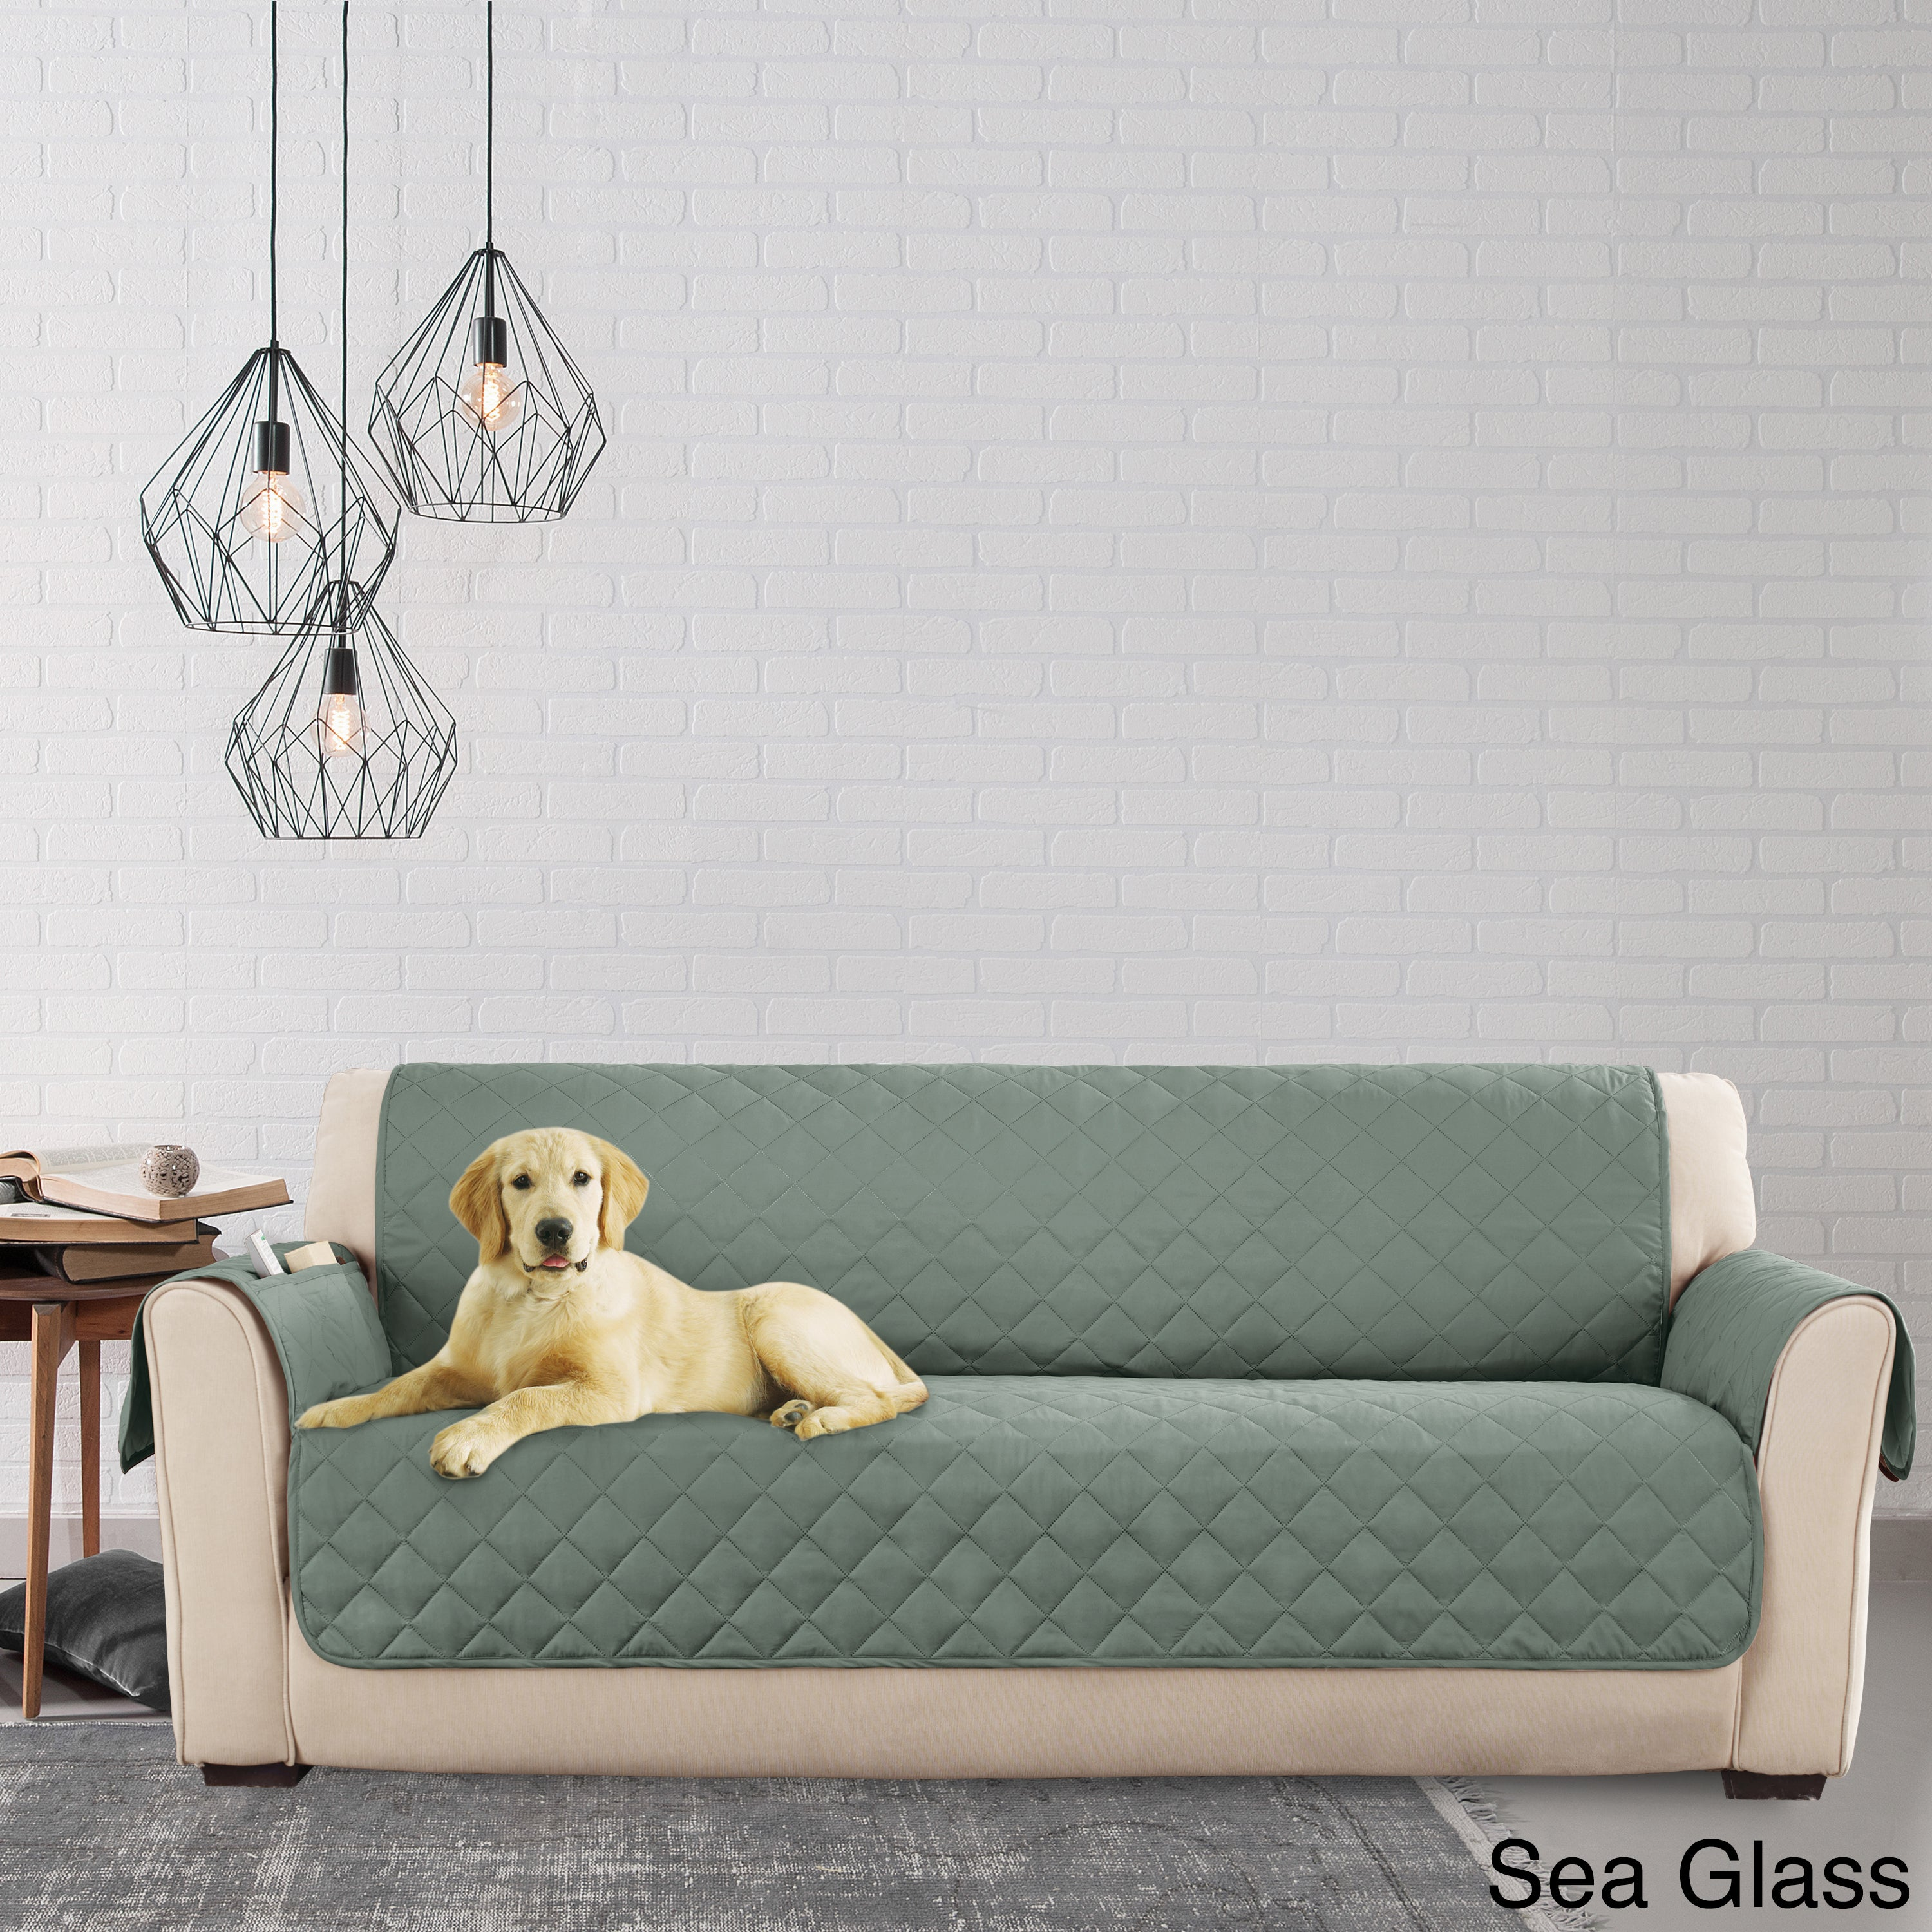 New Sure Fit Sofa Covers For Pets Sectional Sofas